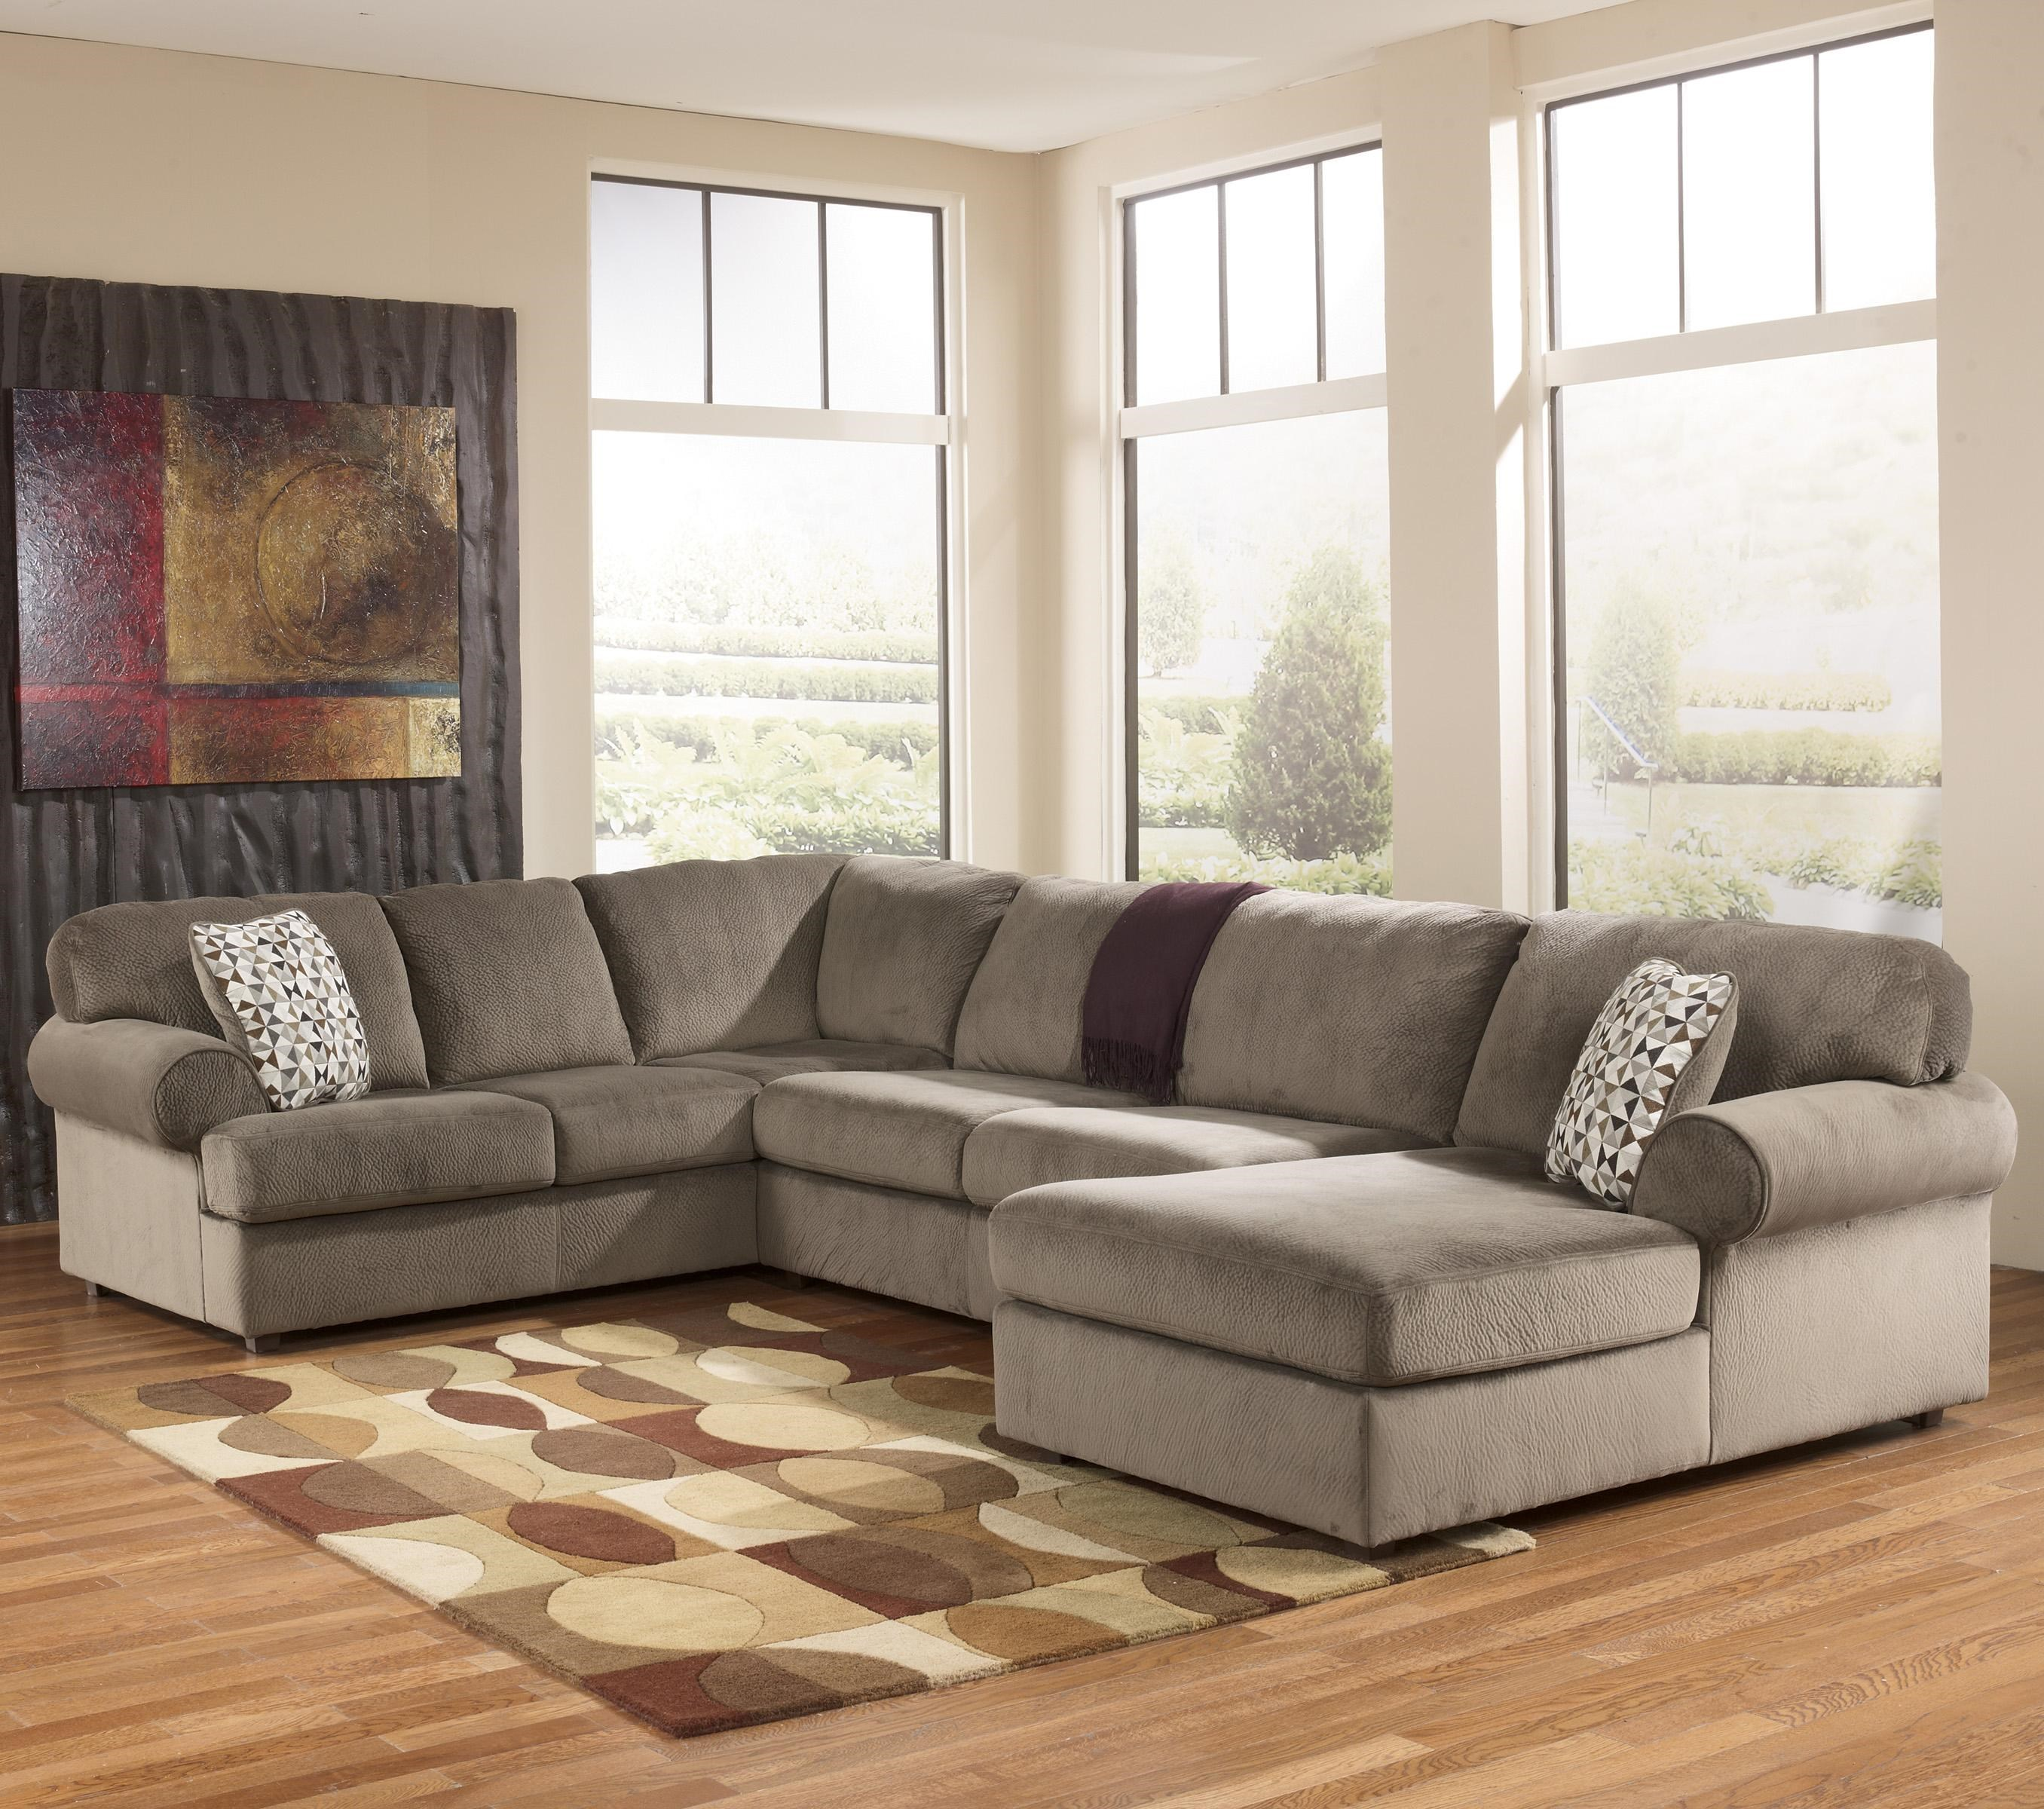 Wonderful Ashley Furniture Sectional Couches Katisha Platinum Sofa